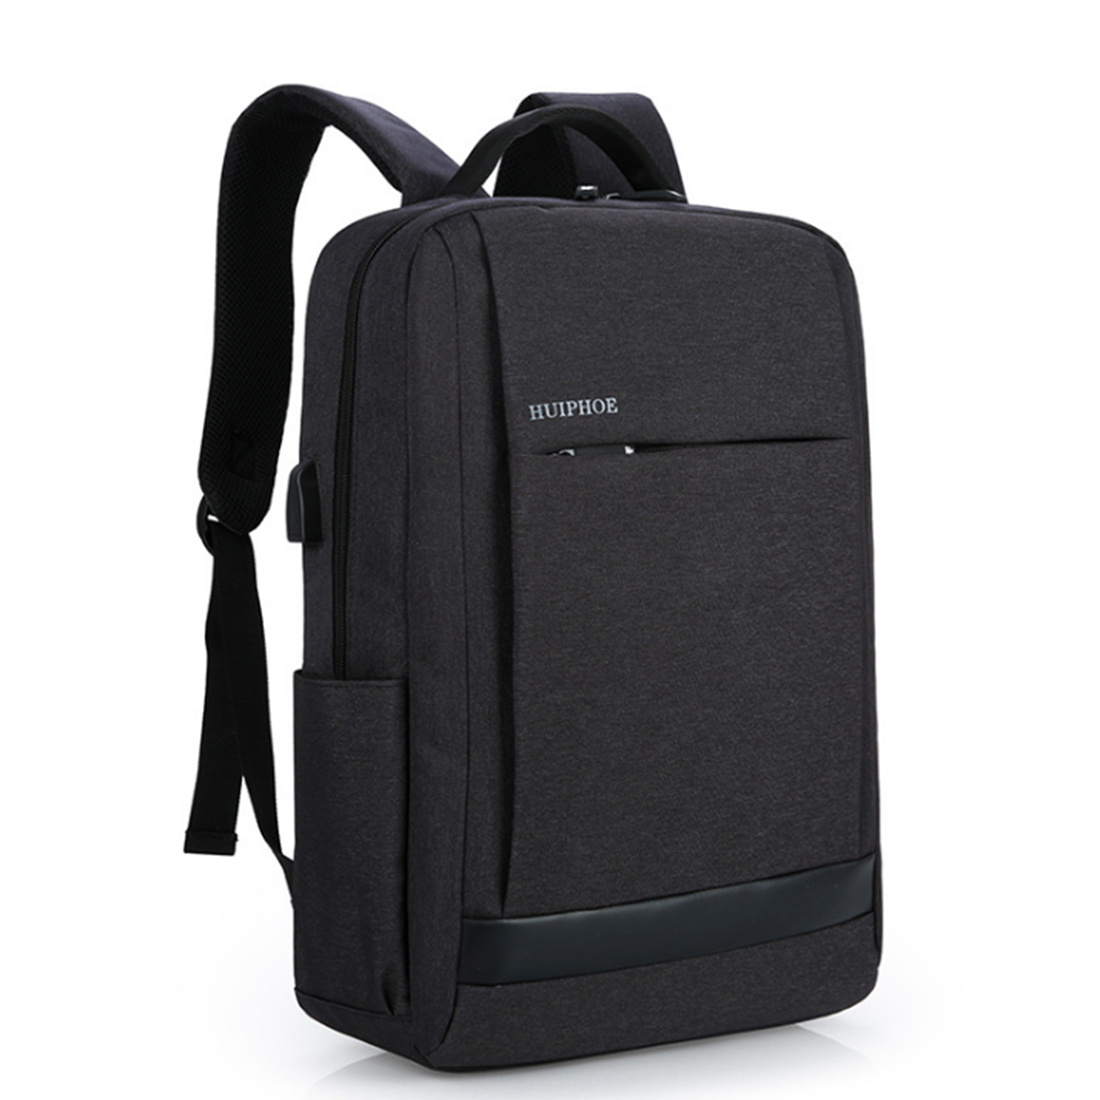 ARESLAND  Oxford Cloth Men Male Laptop Backpack Big Capacity Casual Travel Business Bag With USB Charging Port - Black yeso brand 2017 waterproof oxford business backpack men the knapsack travel school backpacks women professional big capacity